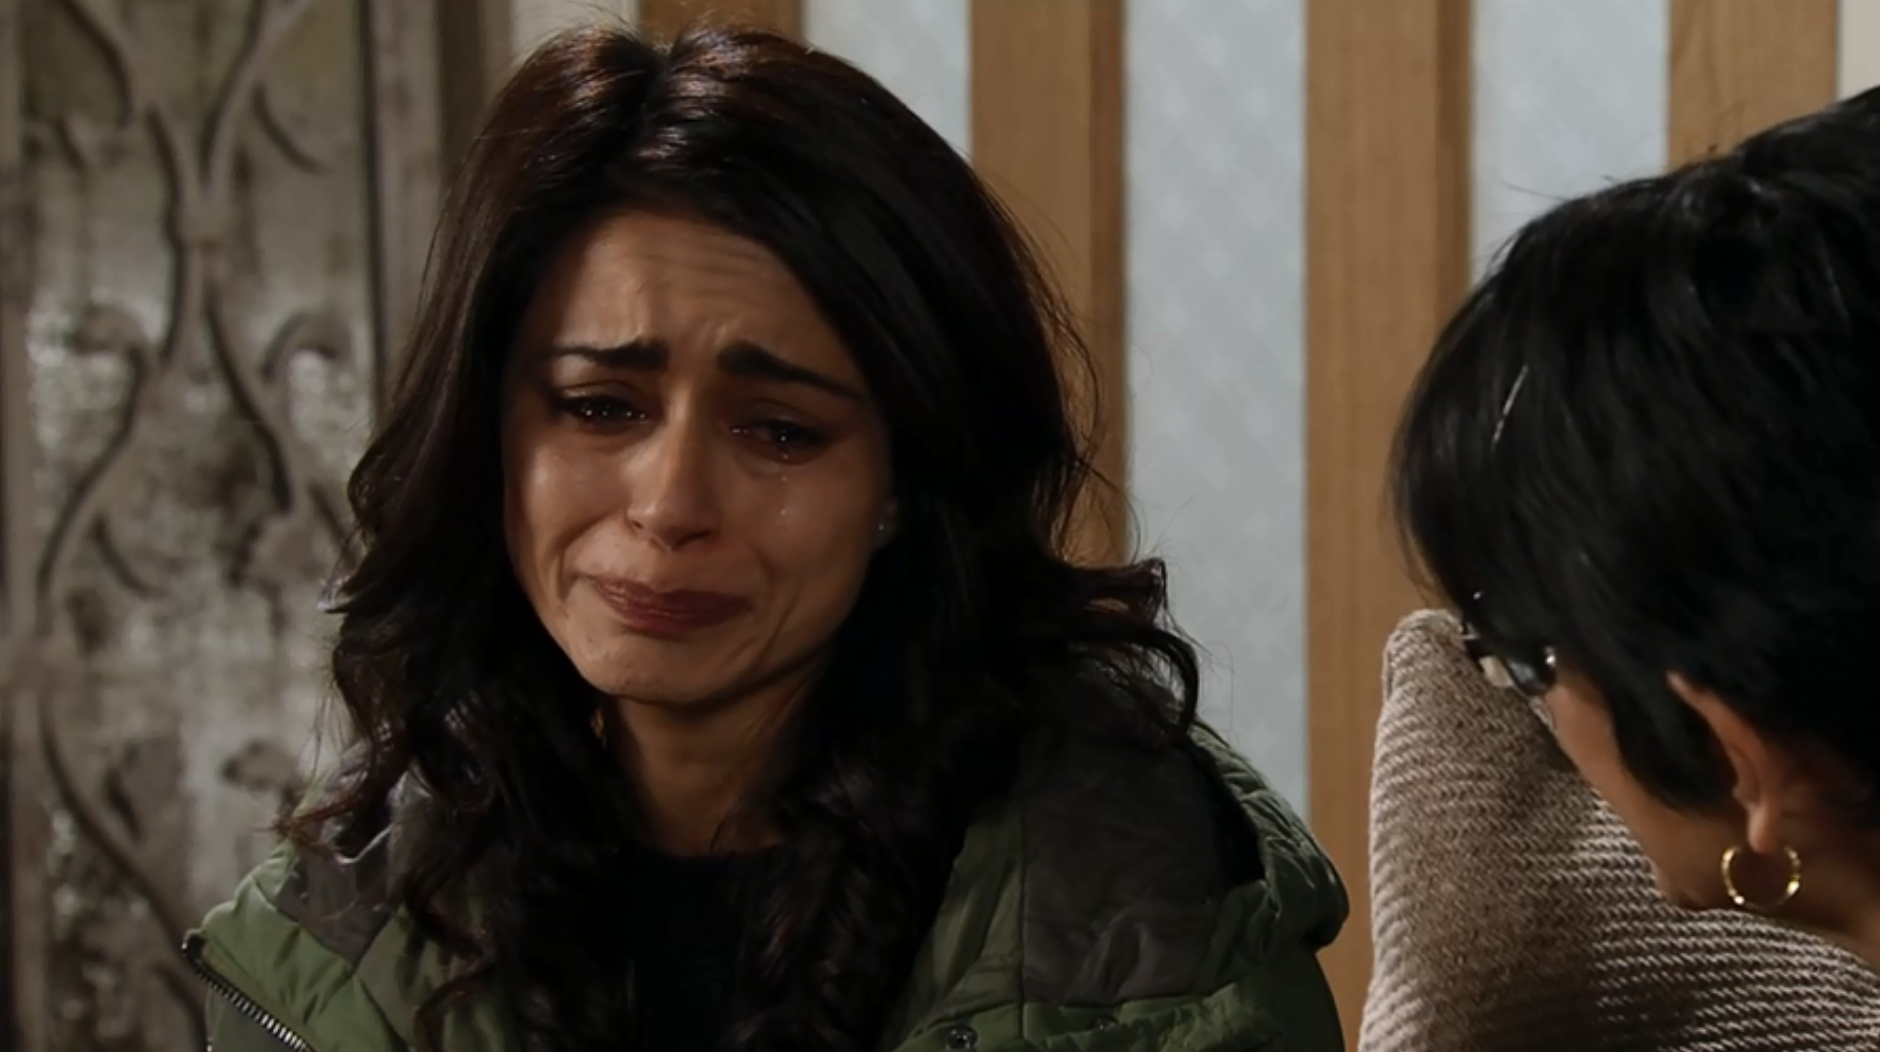 Coronation Street's Yasmeen Nazir tries to save Rana from her parents' sick deal with husband Zeedan